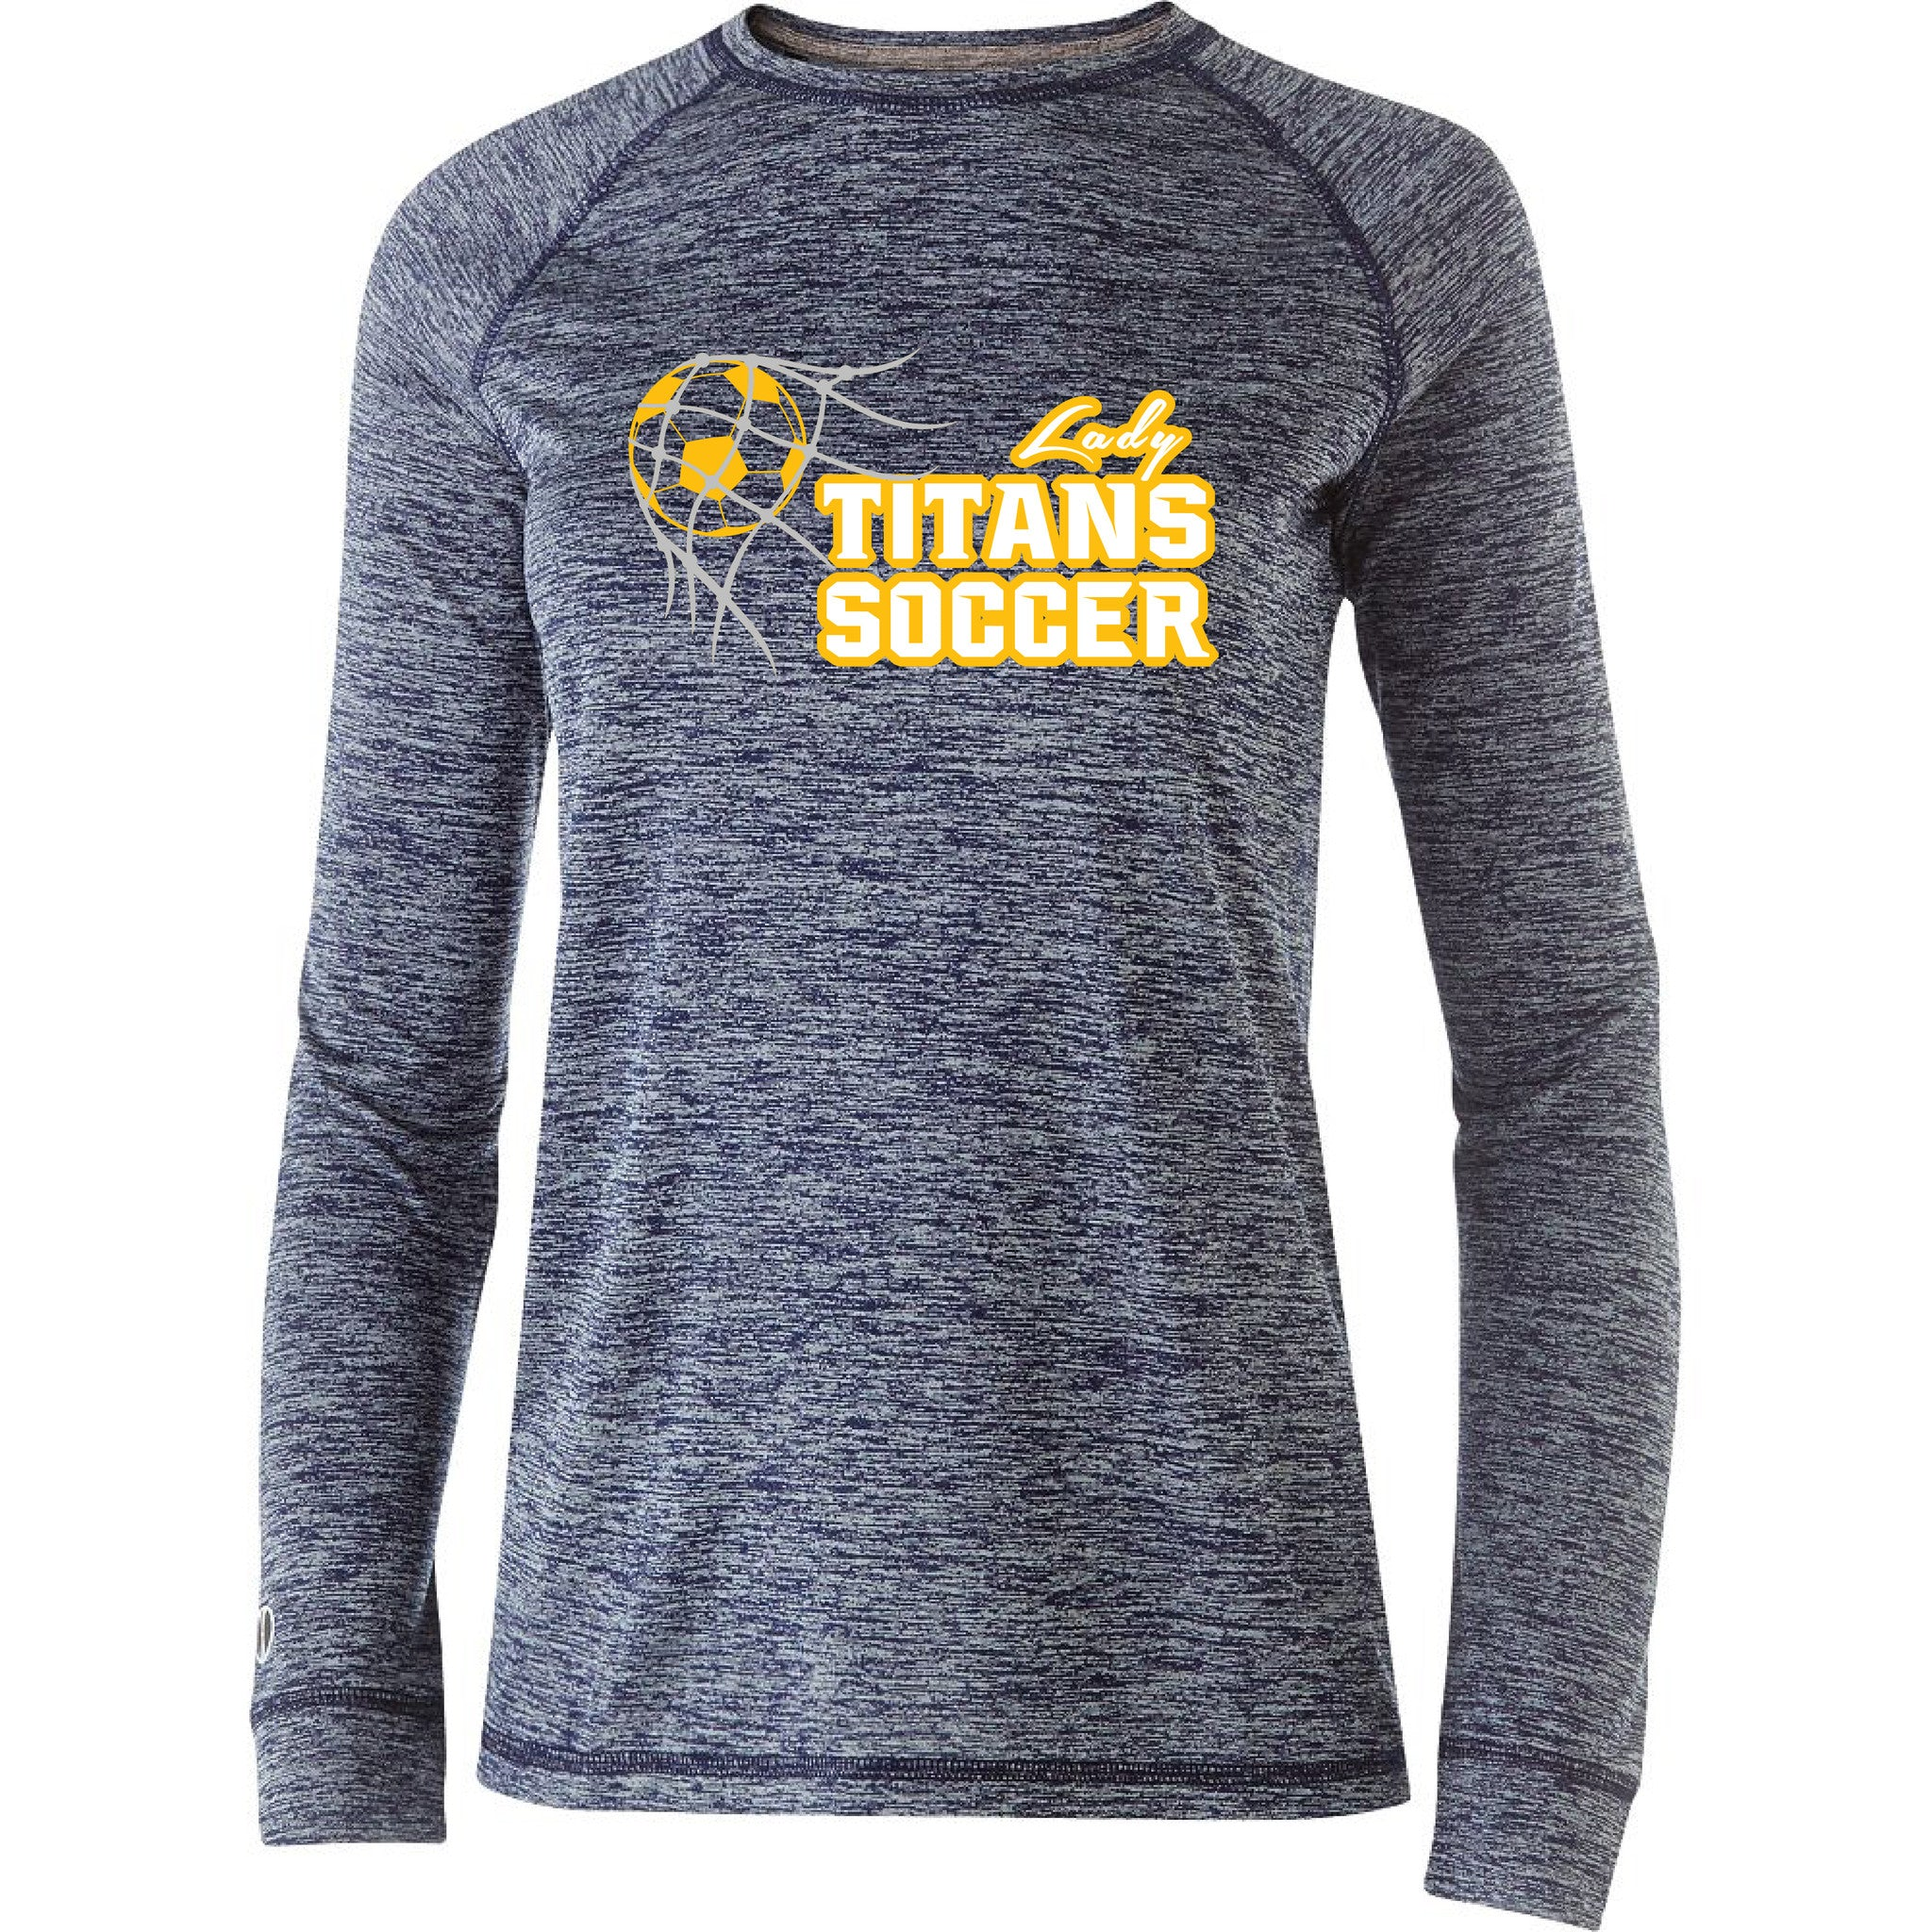 Ladies Lady Titans Soccer Electrify Performance LS Shirt - Navy